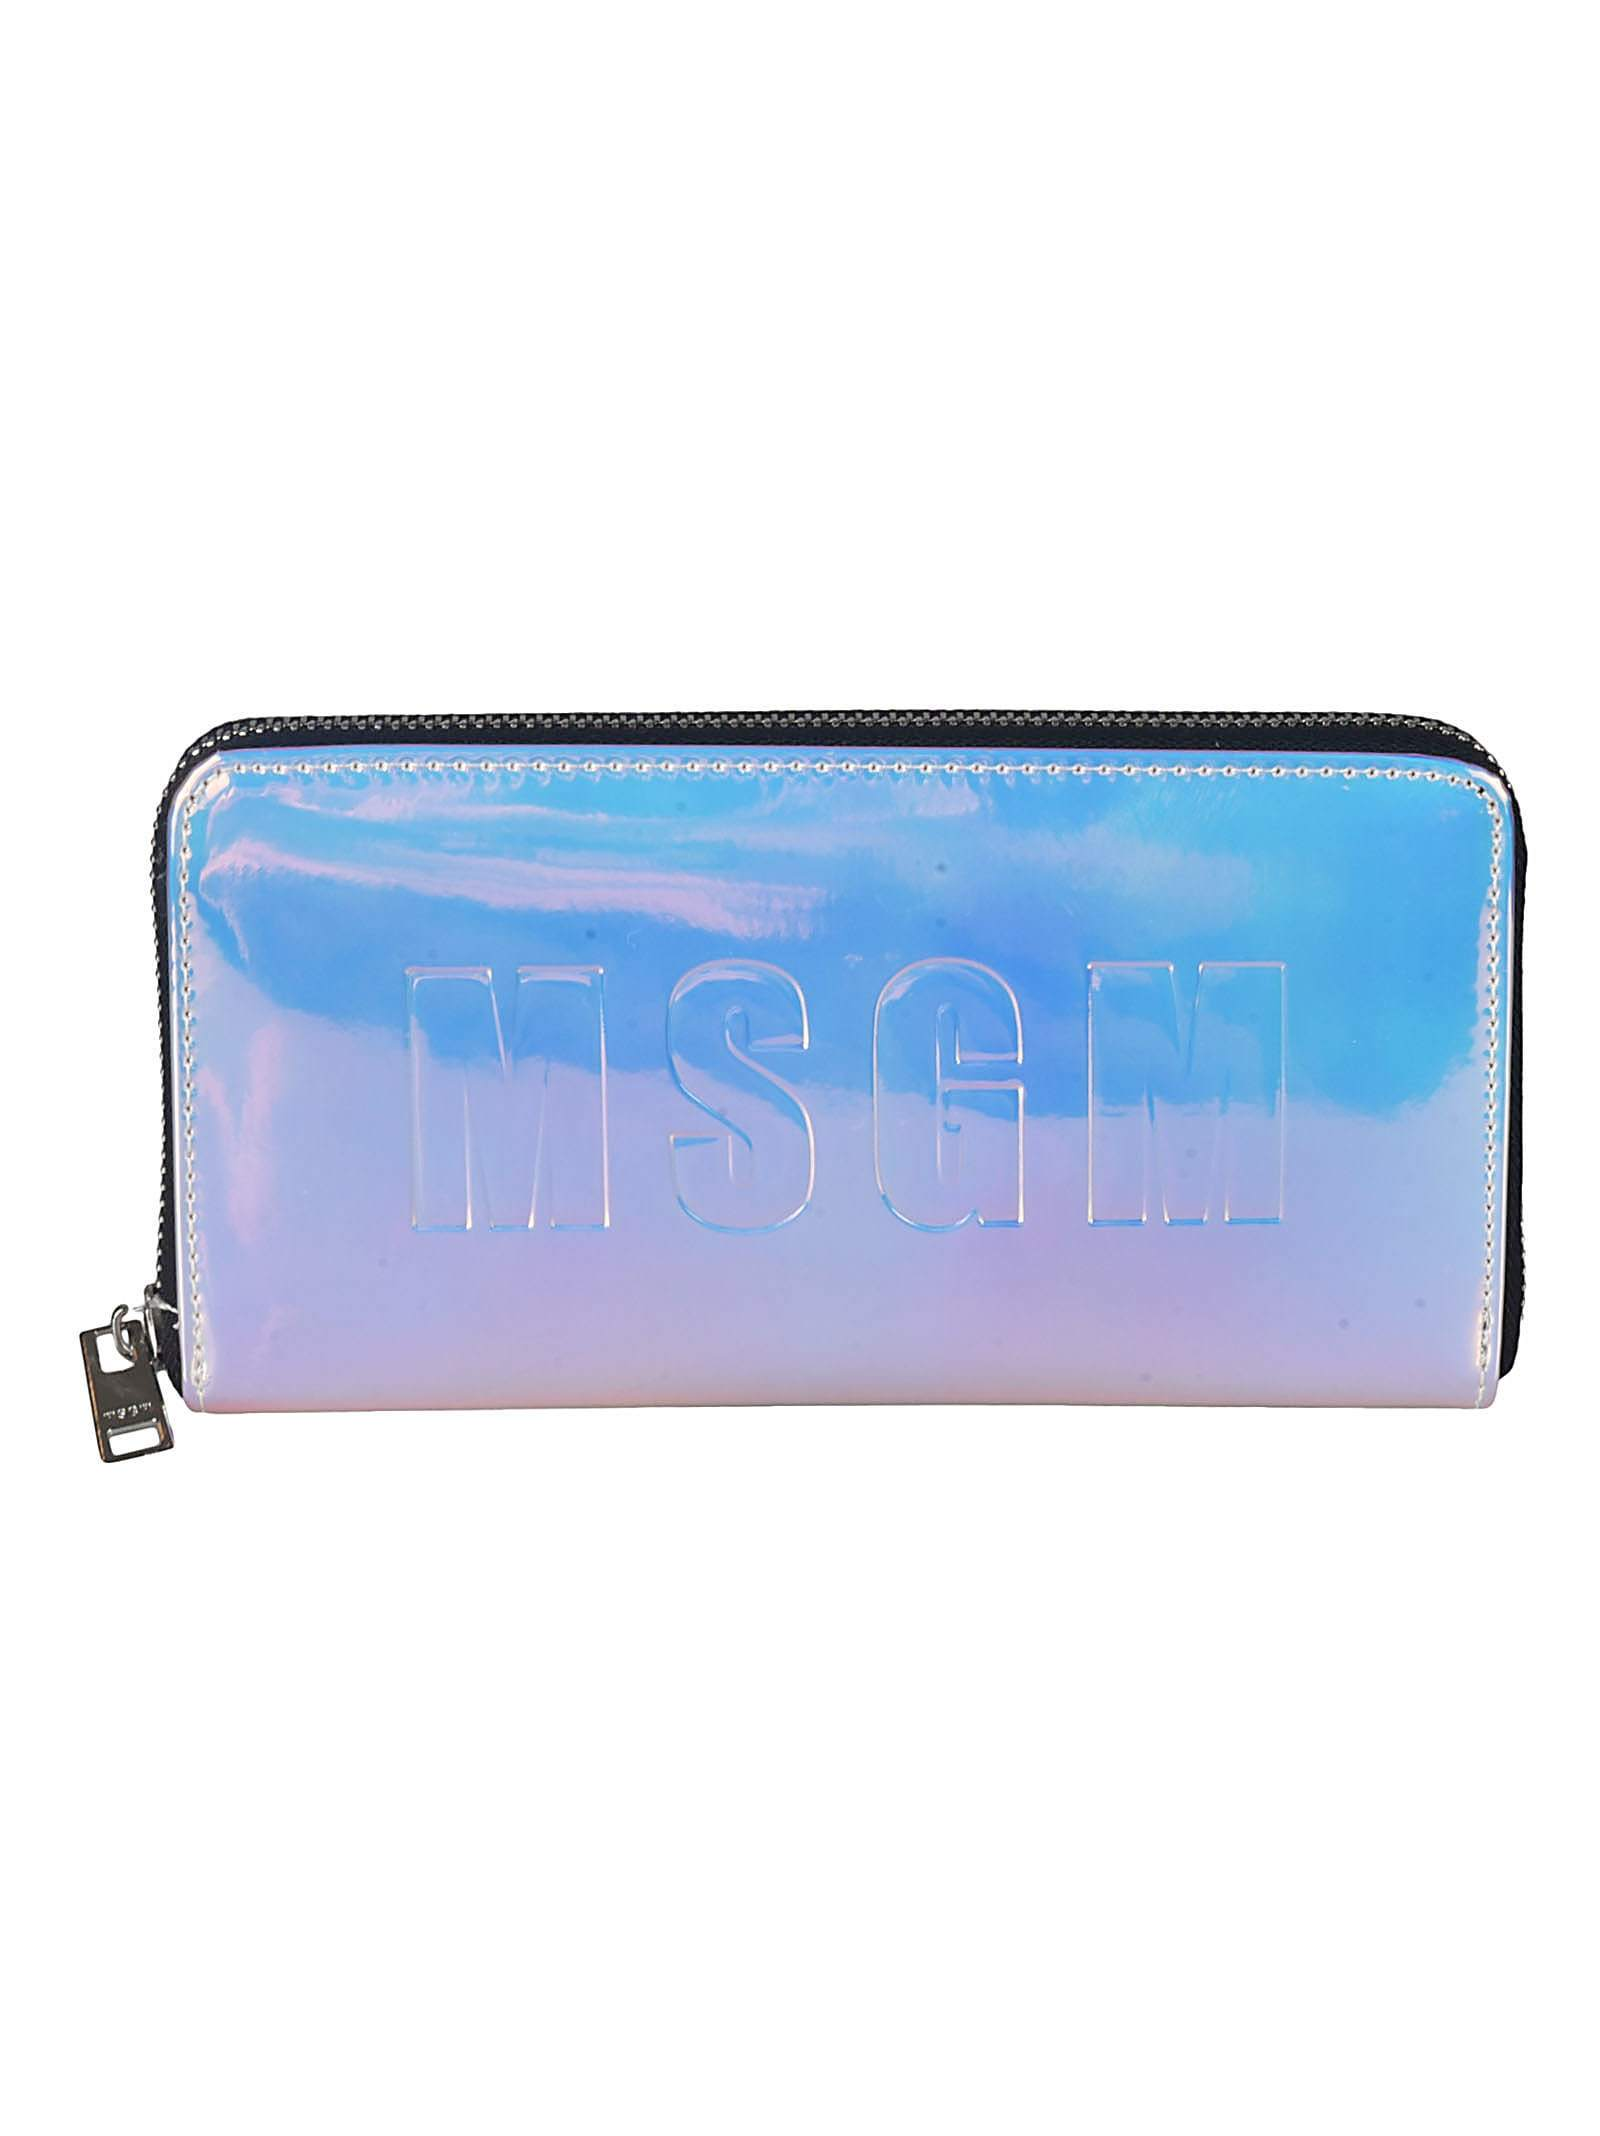 shop msgm wallets & card holders